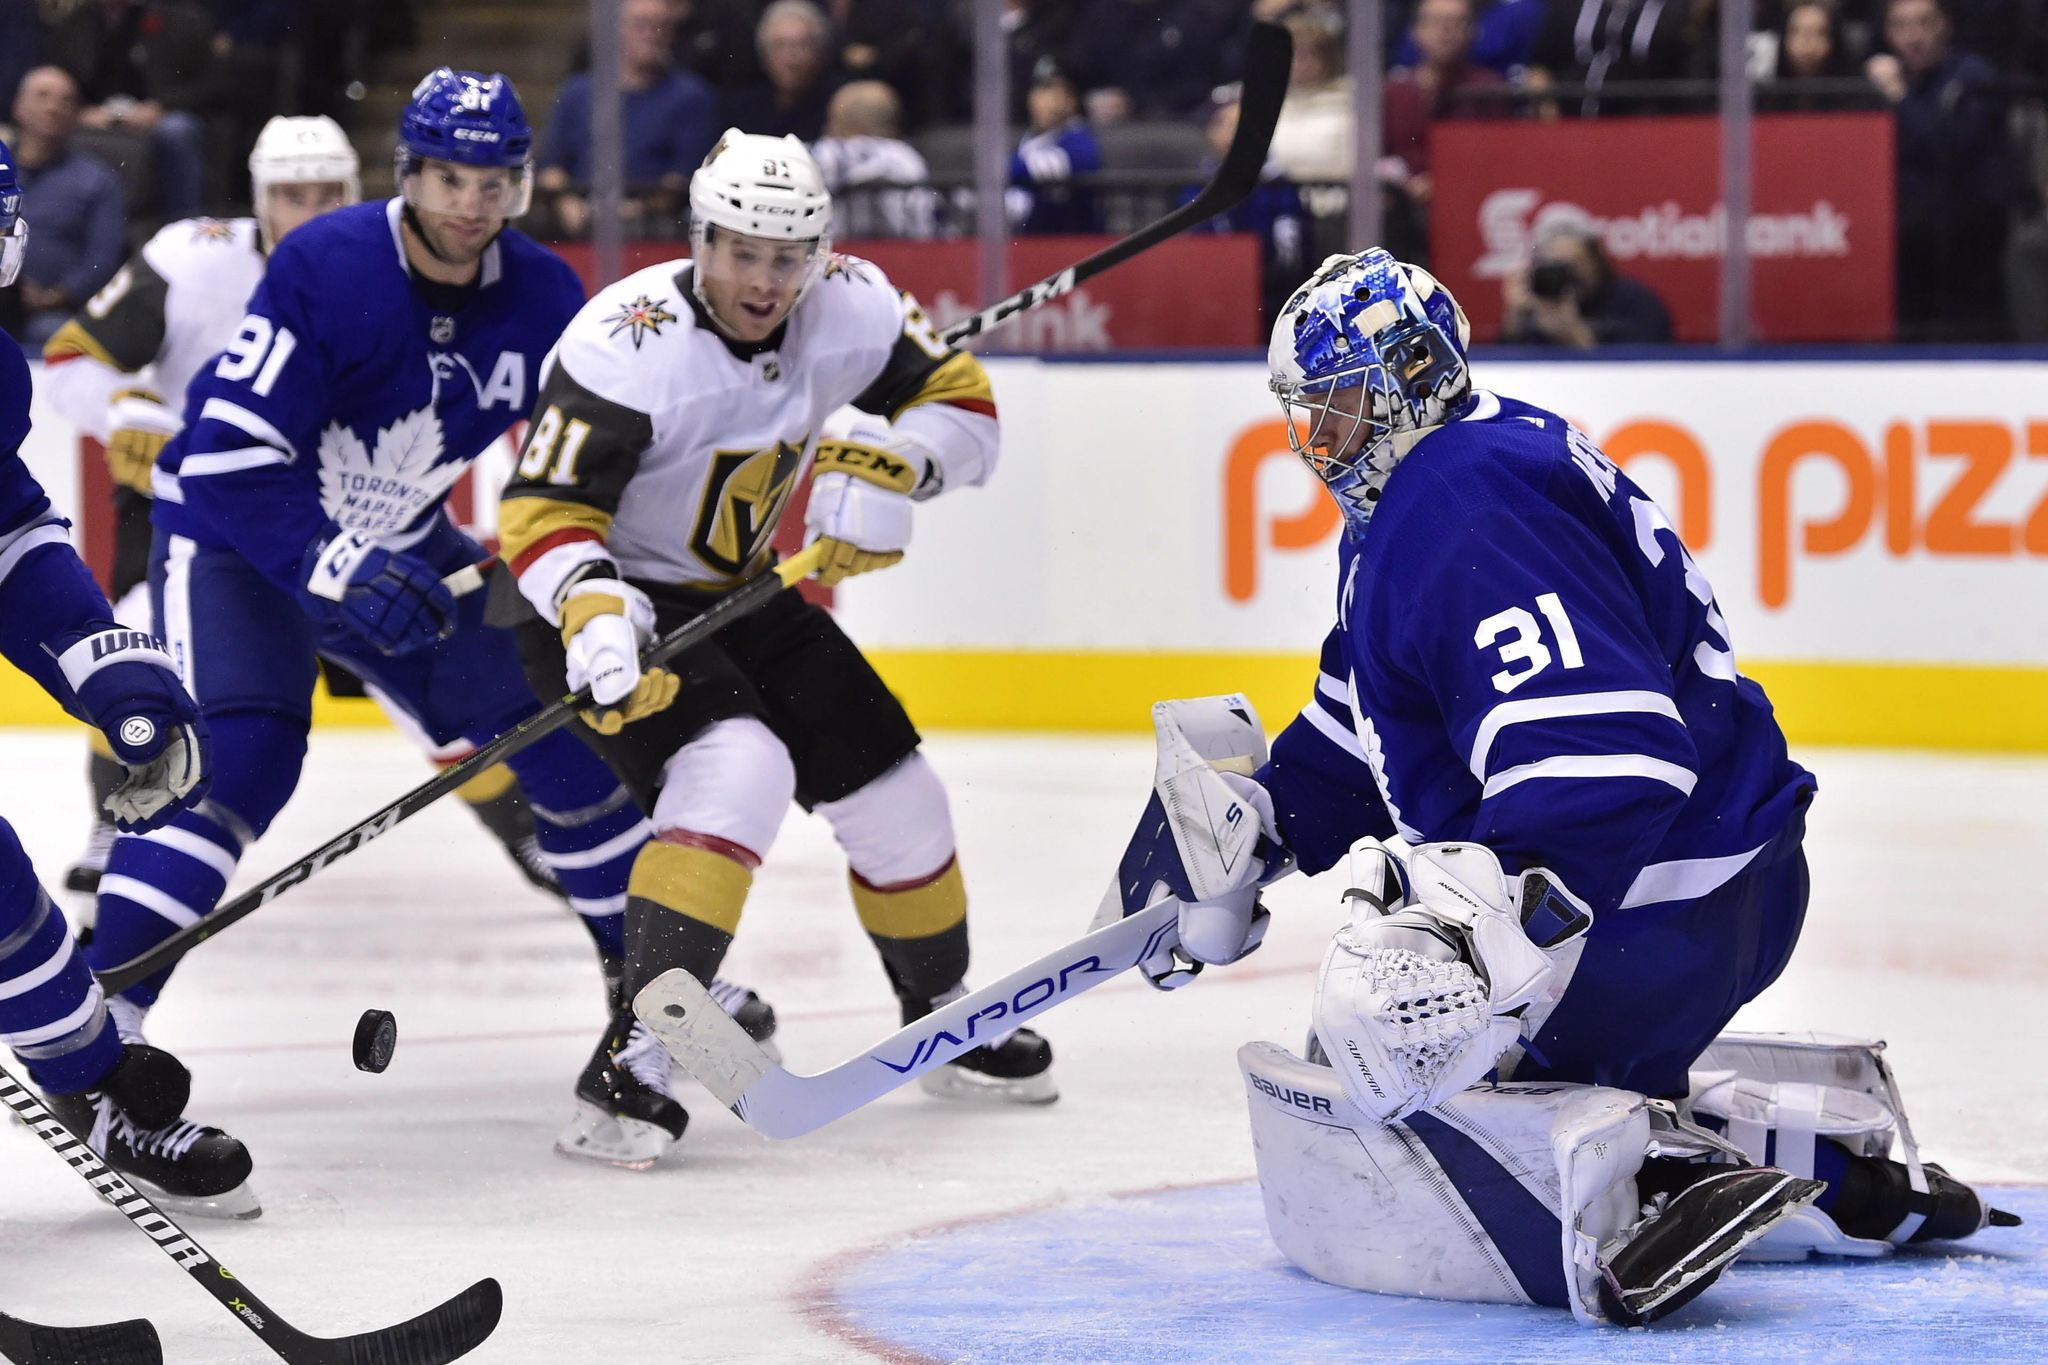 Golden_knights_maple_leafs_hockey_81774_s2048x1365